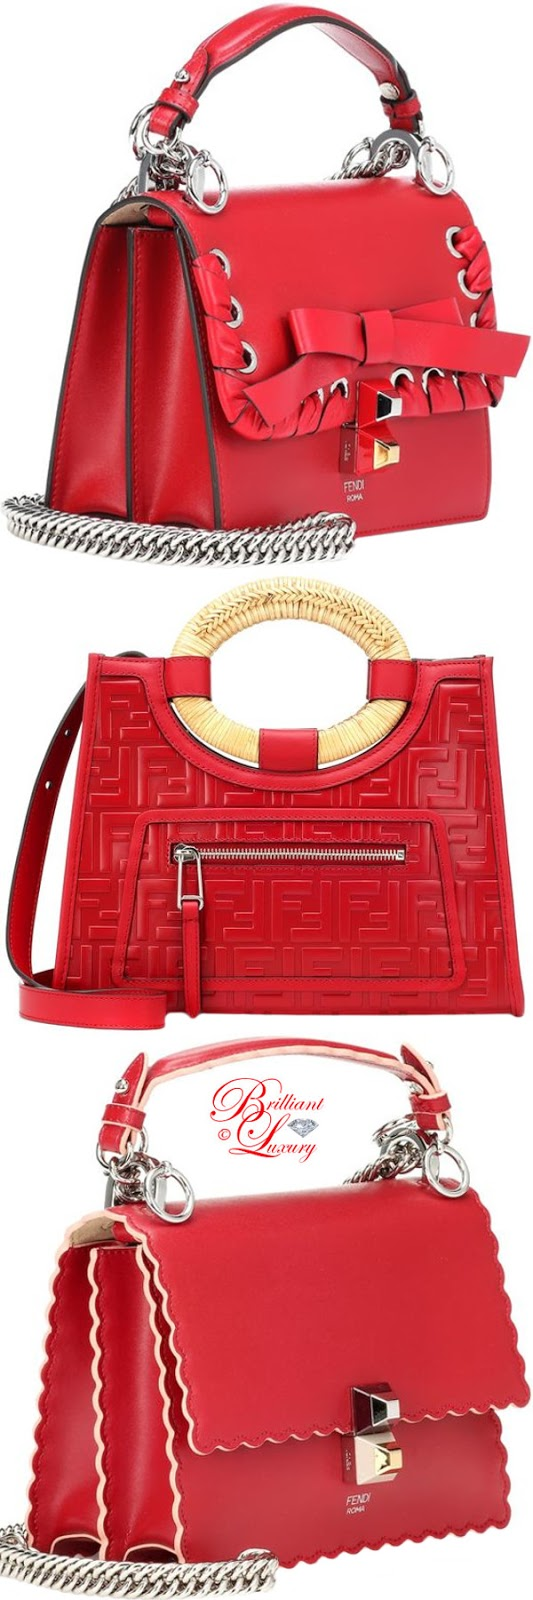 Brilliant Luxury ♦ PANTONE Fashion Color SS 2019 ~ Fiesta ♦ Fendi Kani I and Runway leather totes #red